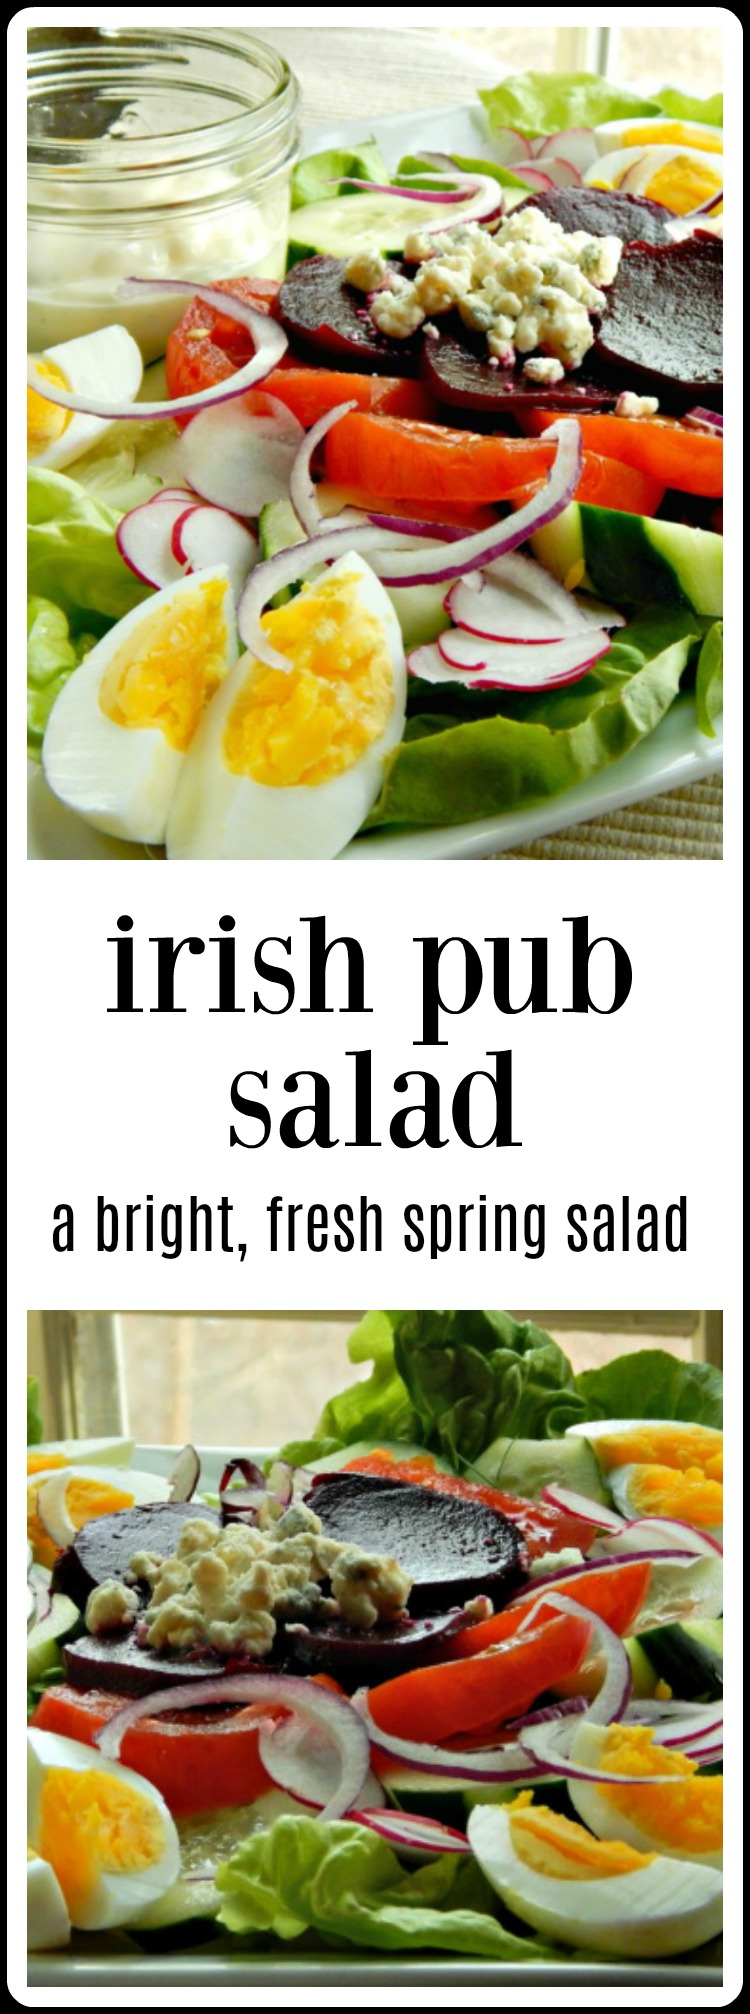 Irish Pub Salad is a tasty salad that bridges the gap from winter to spring, Beautiful bibb lettuce, salad bar type veggies, an amazing home-made dressing (OMG that dressing!) and bleu cheese. The beets are my Irish Grandma's recipe, but jarred will do.